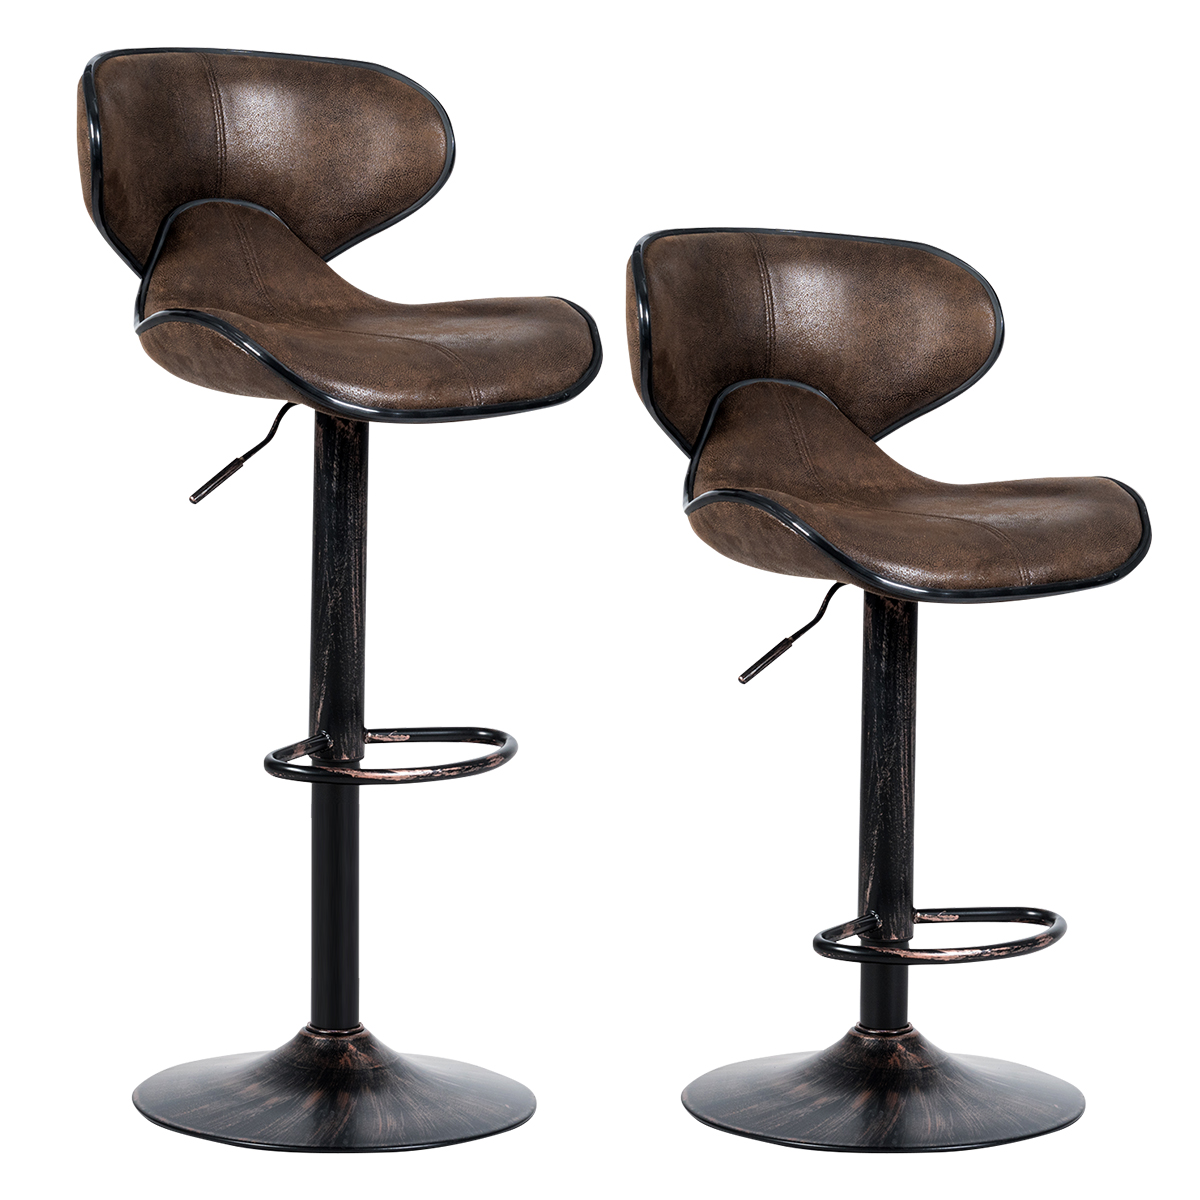 Costway Set Of 2 Adjustable Bar Stools Swivel Bar Chairs With Back&Footrest Retro Brown